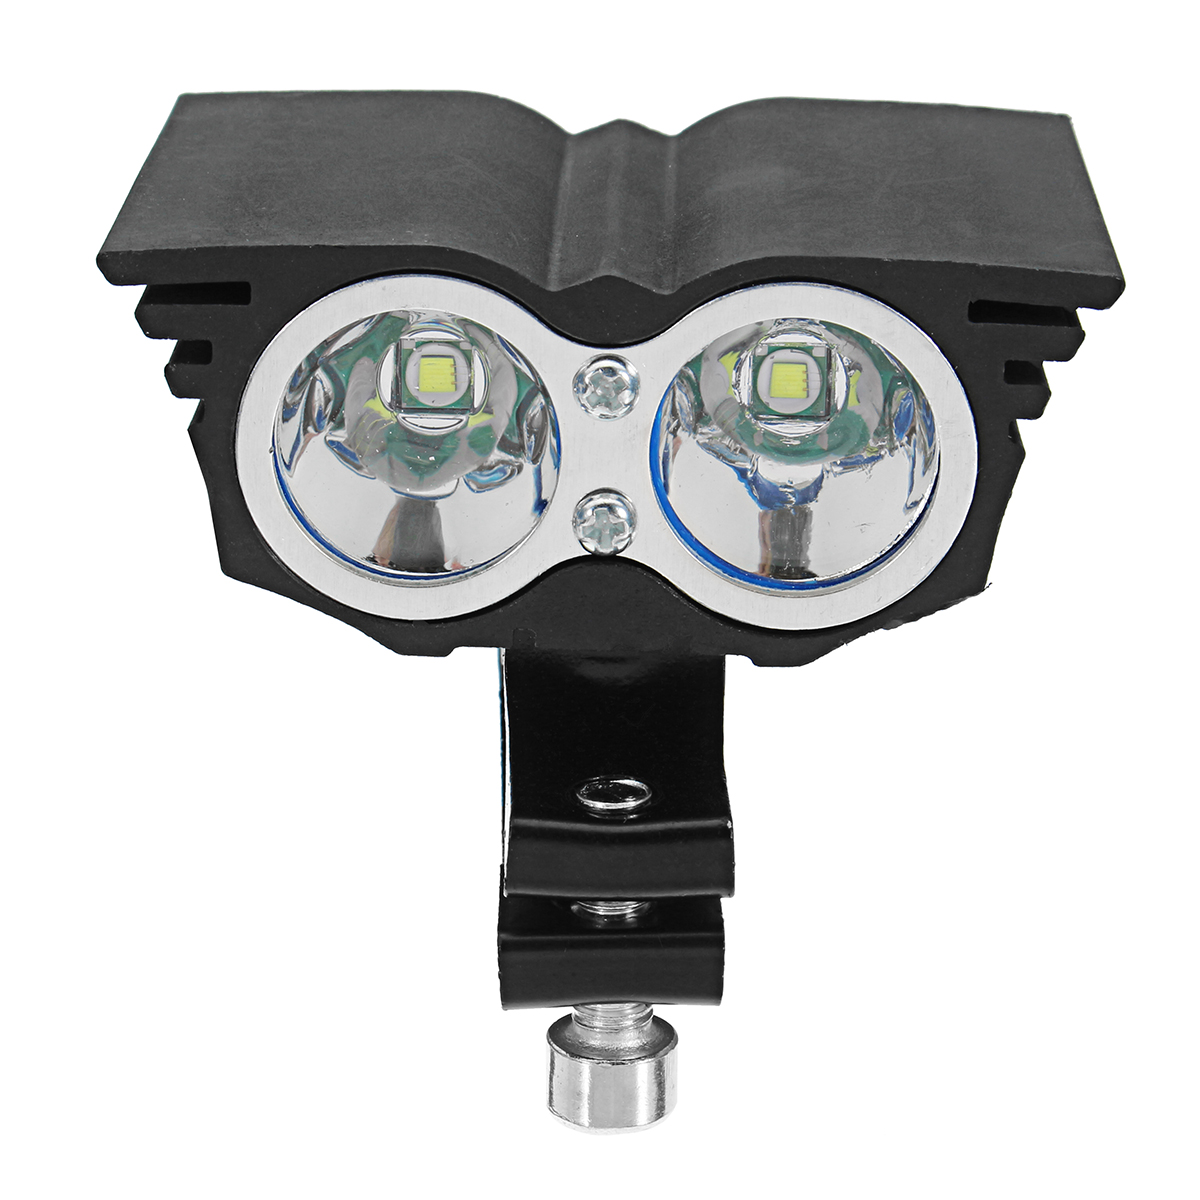 Pair 12/24V 20W 6000K Eagle Eye Styling LED Spotlight Motorcycle Headlight Auxiliary Fog Lamp